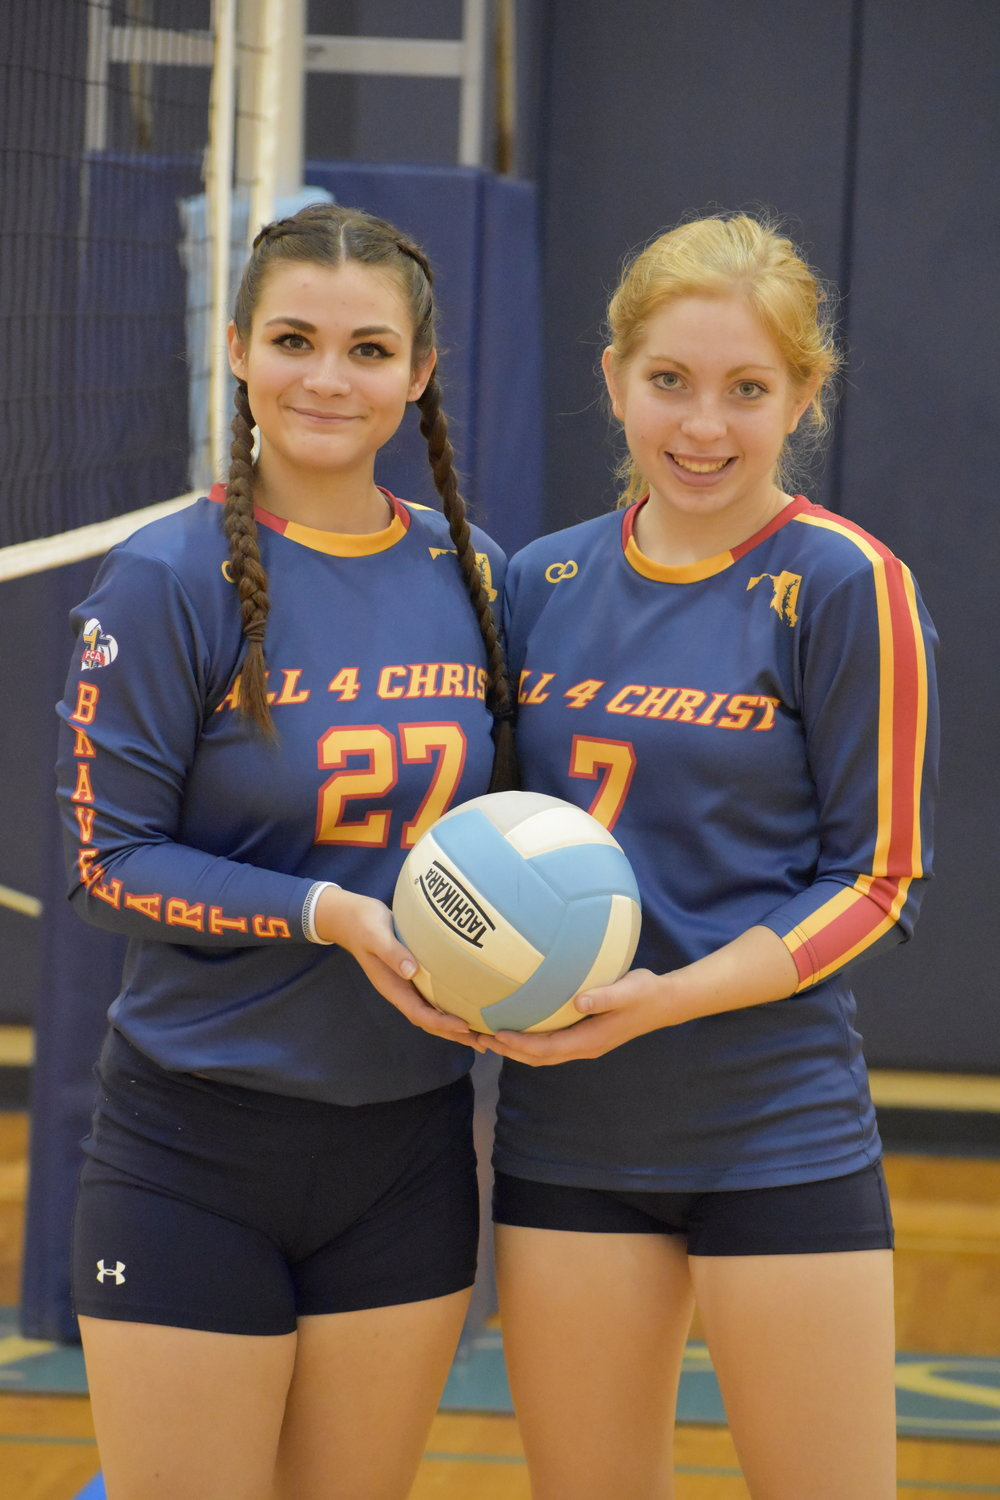 Blue Yellow Red Black volleyball uniforms jersey shirts, shorts